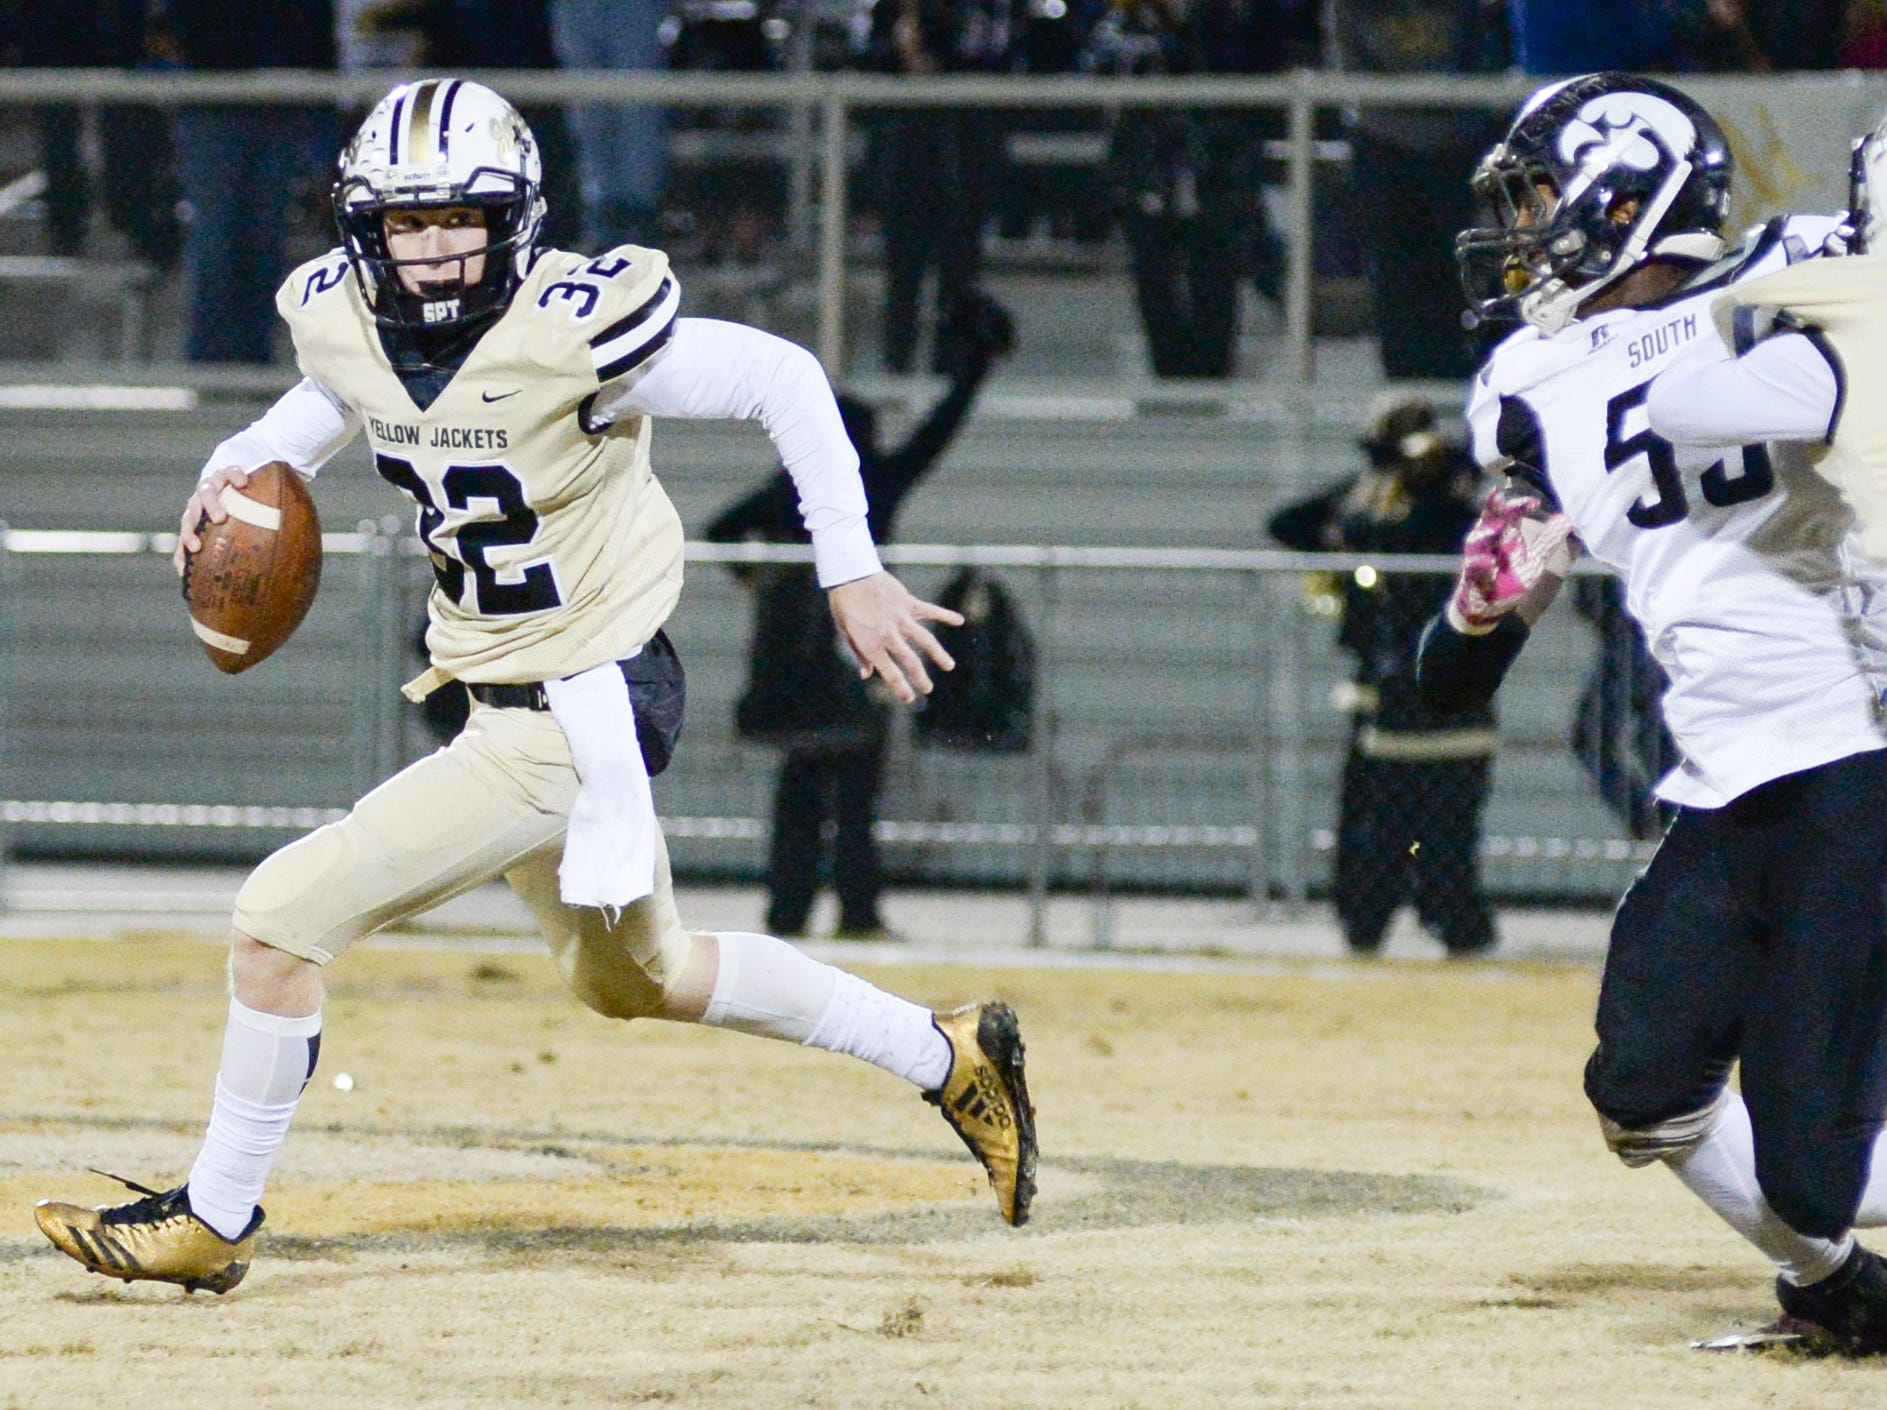 Bryan Hayes (32) carries the ball during a game against South Side School at Springfield High School on Friday, Nov. 9.